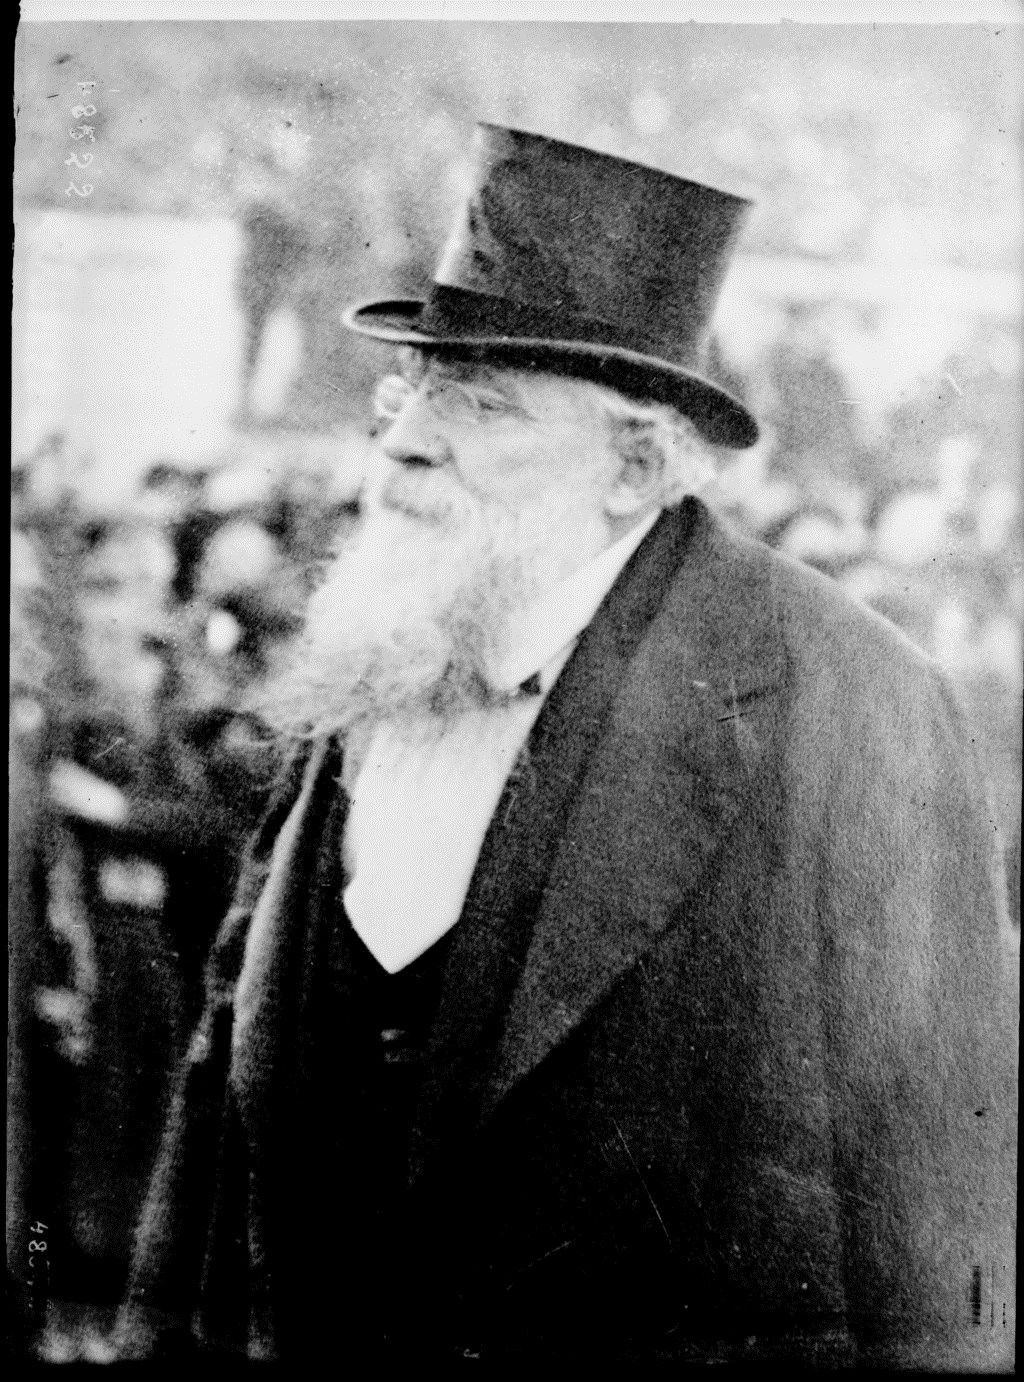 Rodin | Agence Rol. Agence photographique | 1917 | National Library of France | Public Domain